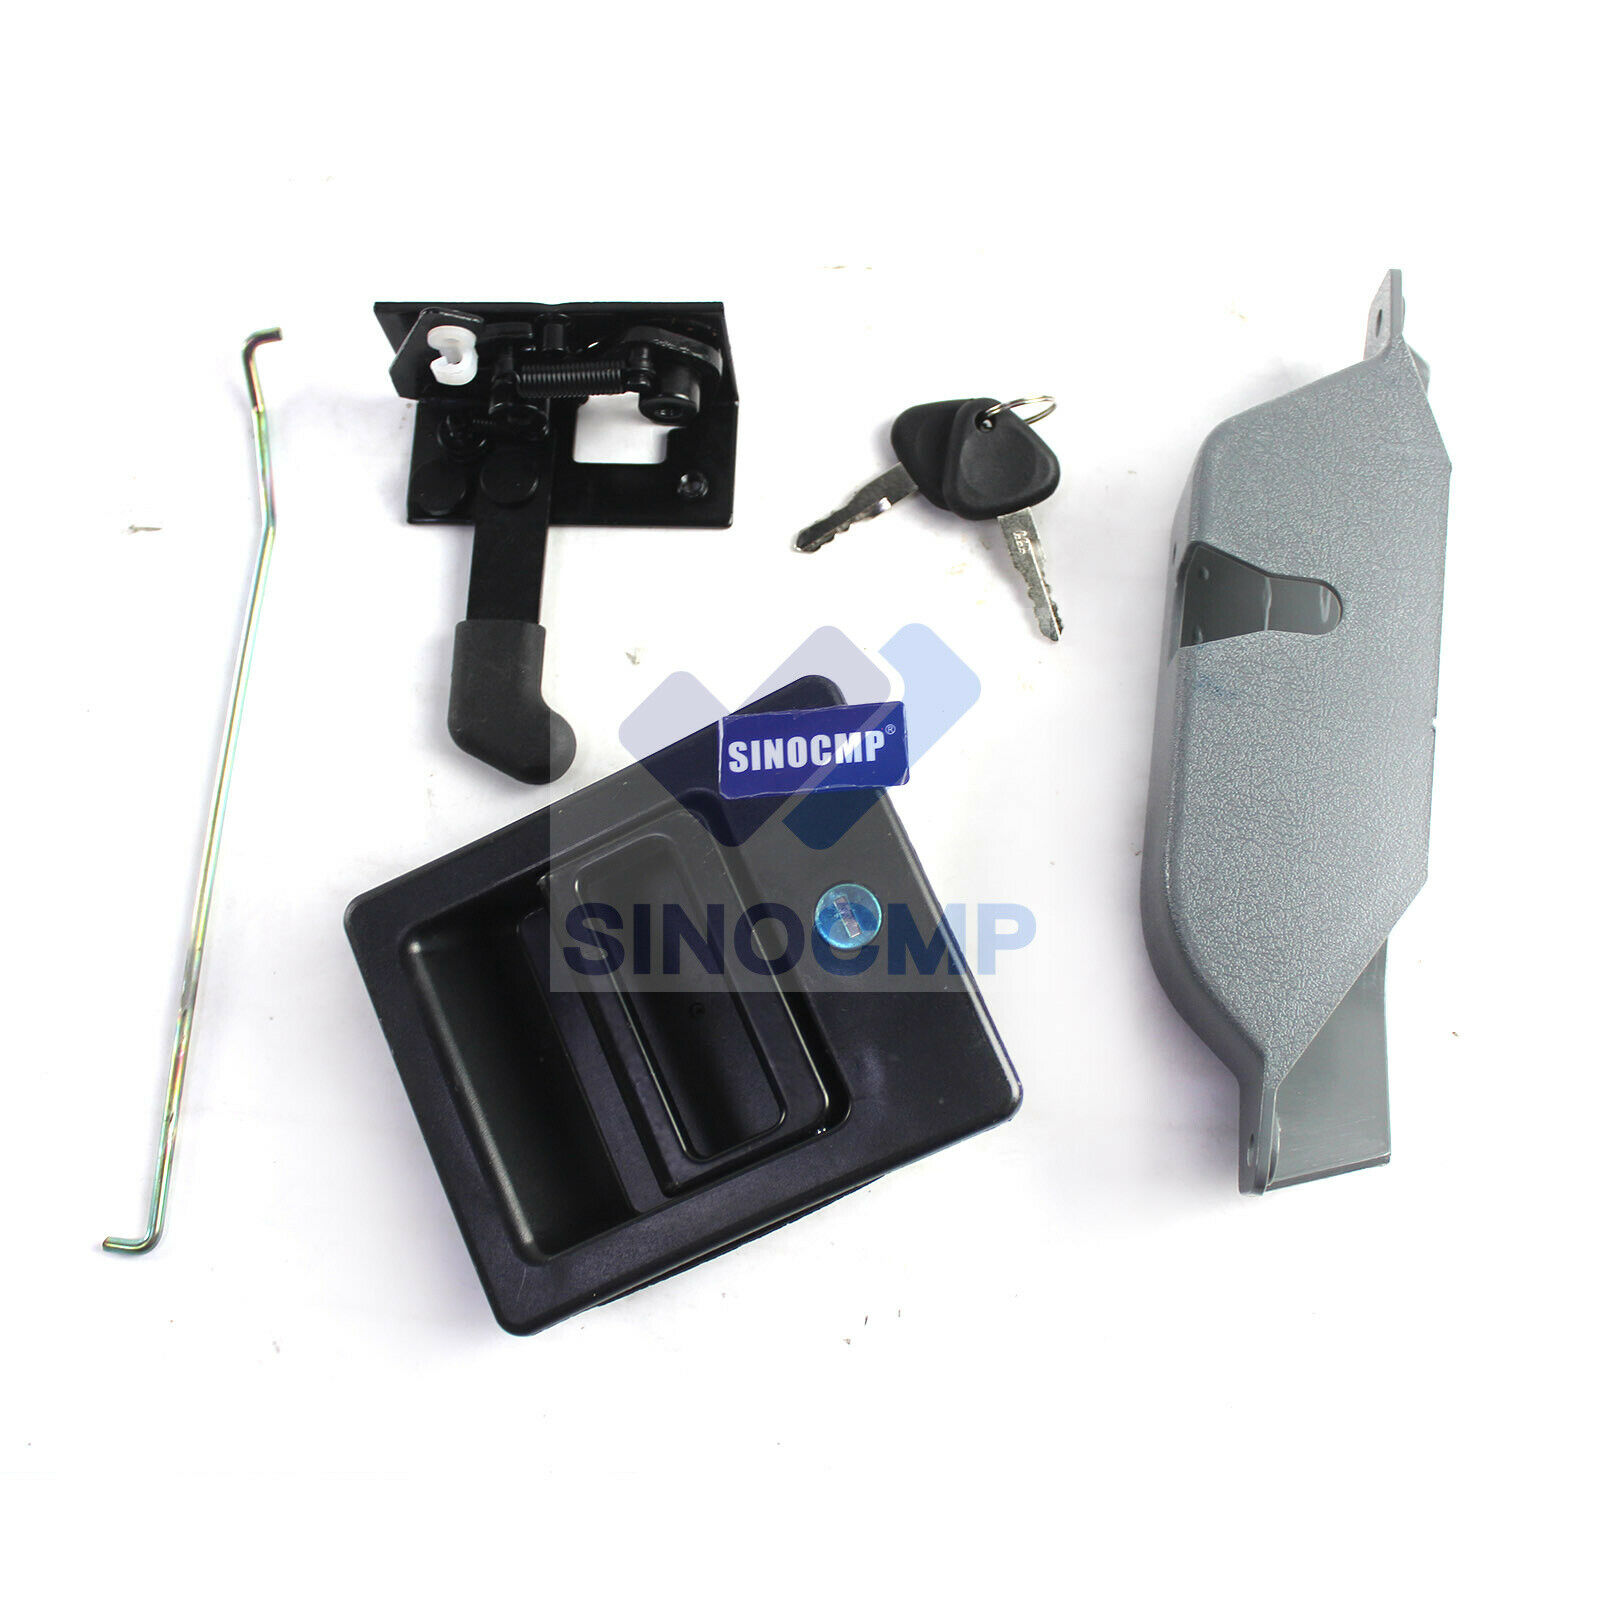 Door Lock Assembly 14506769 14540249 for Volvo Excavator EC210B EC360B, 3 Month Warranty